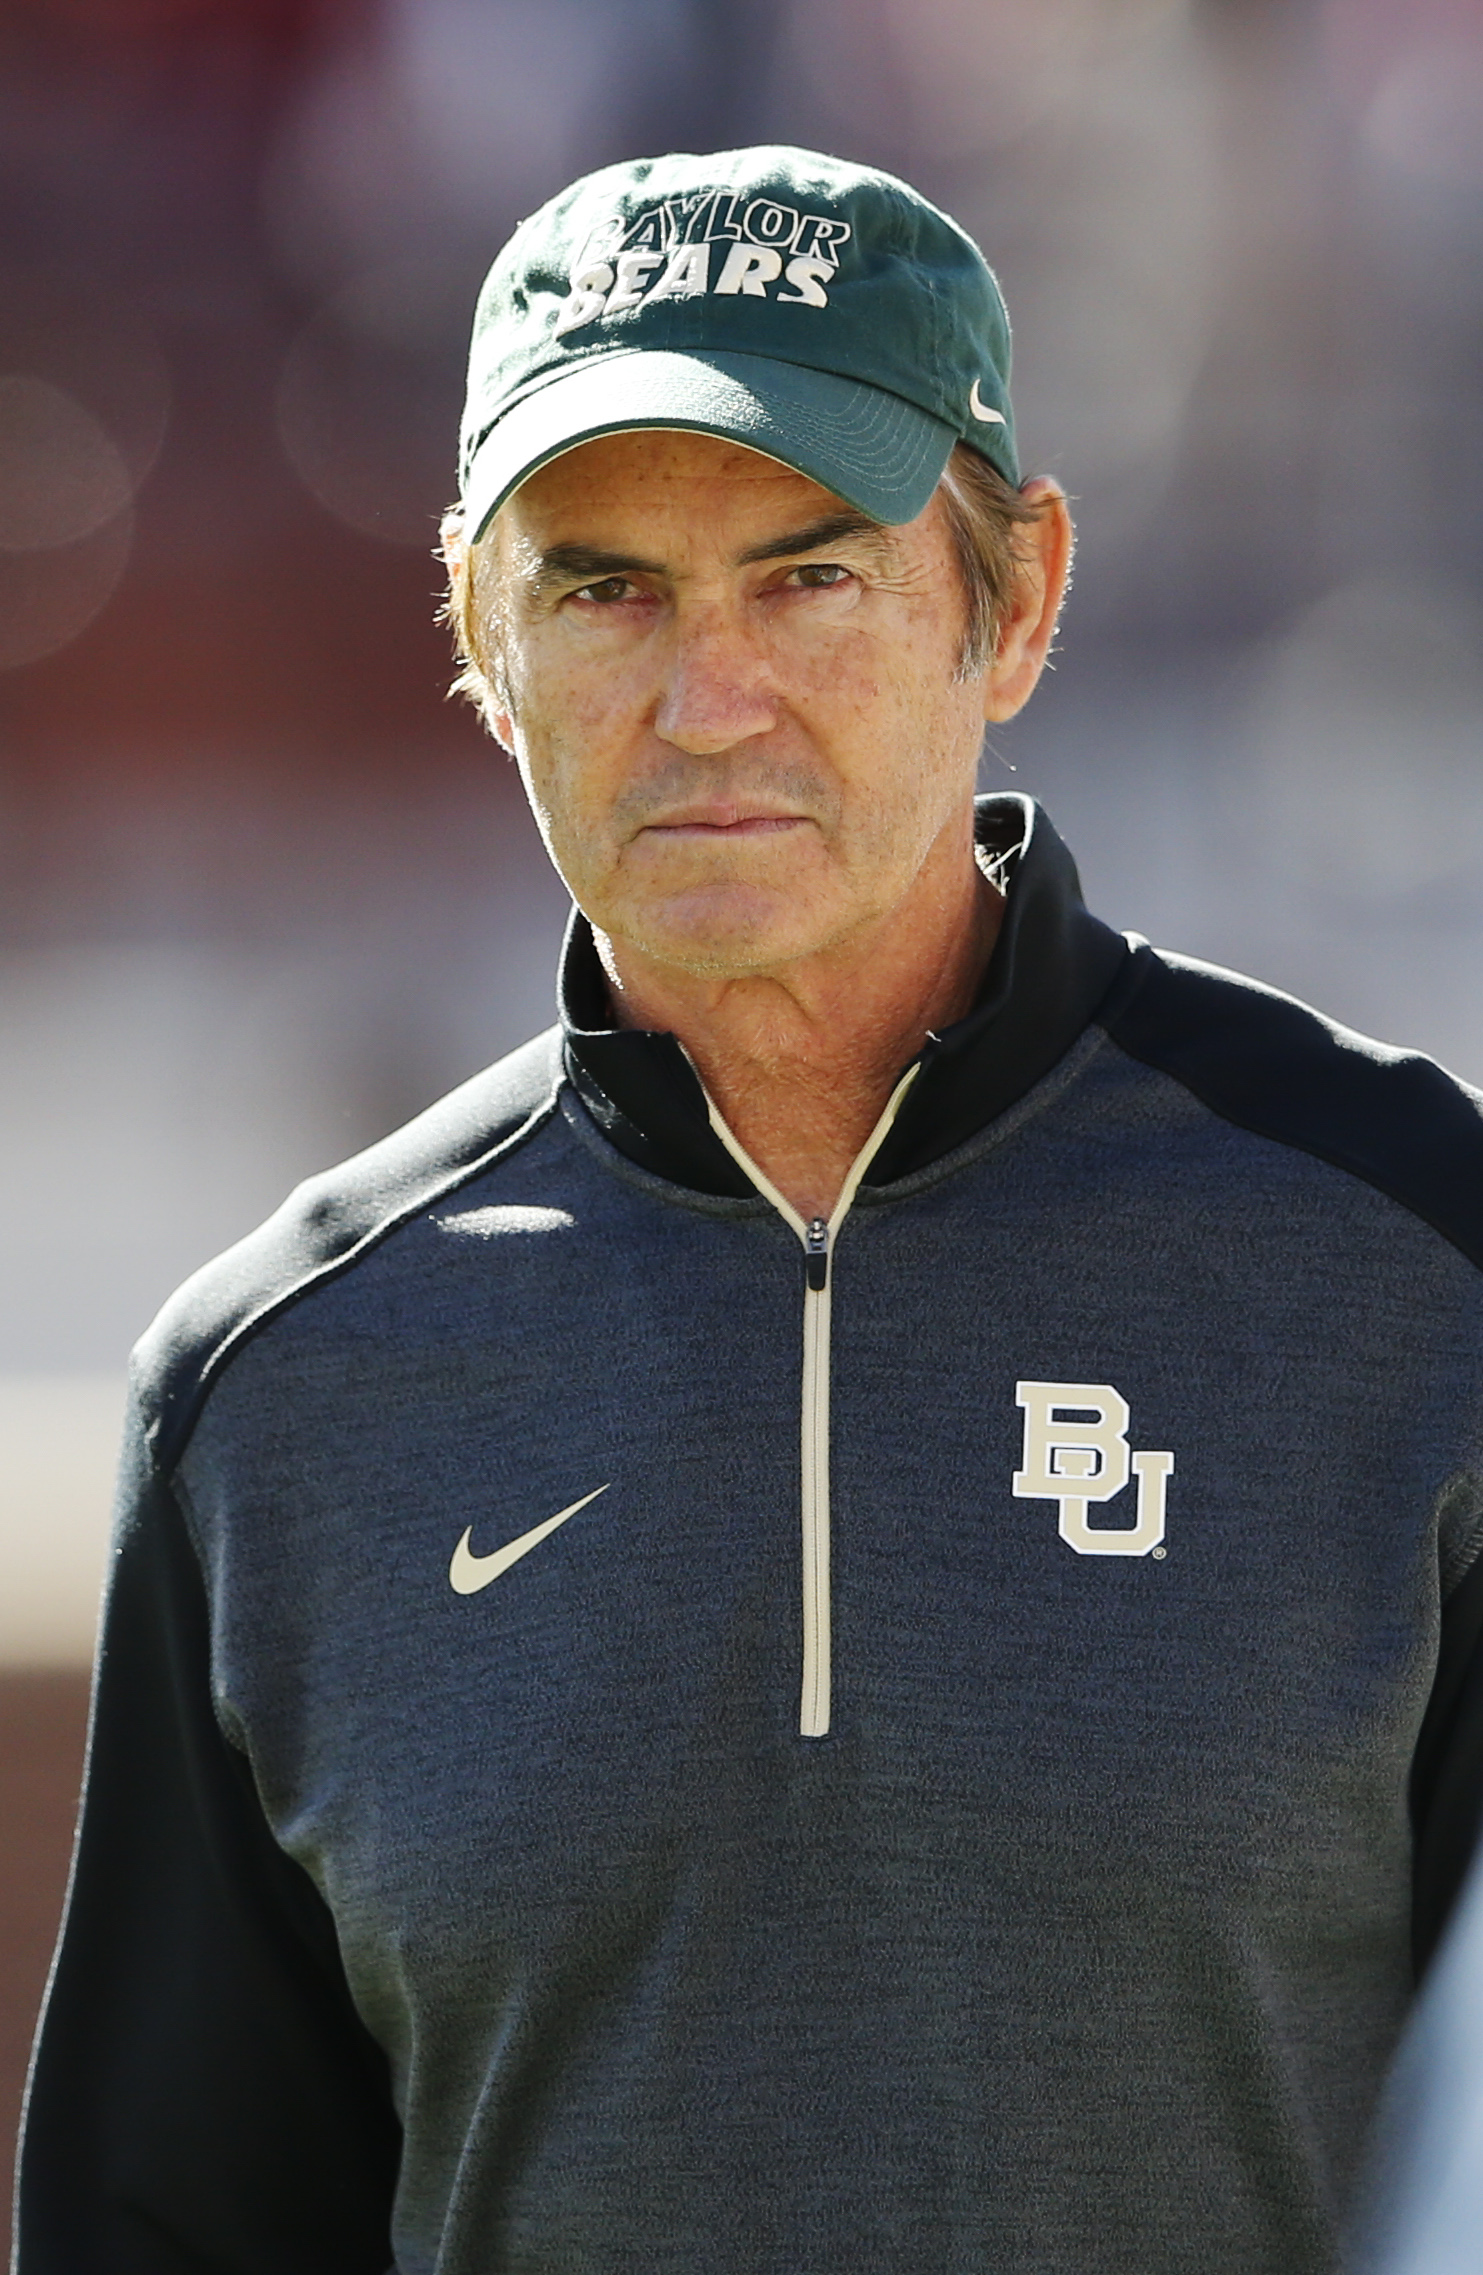 364 days a year, Art Briles is a wonderful guy. Tonight? He's the worst.